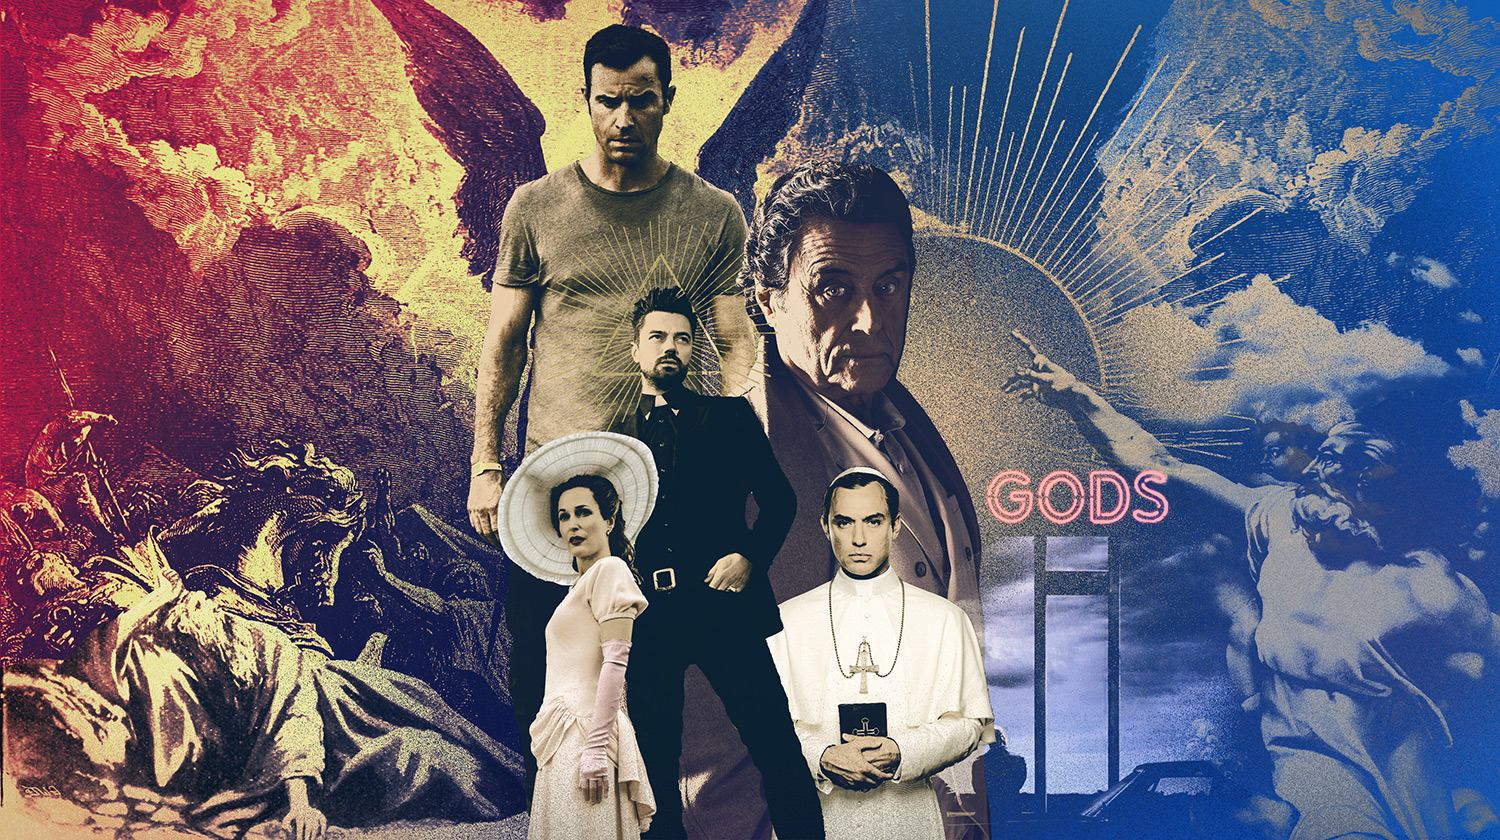 Entertainment Weekly / The Must List: Gods